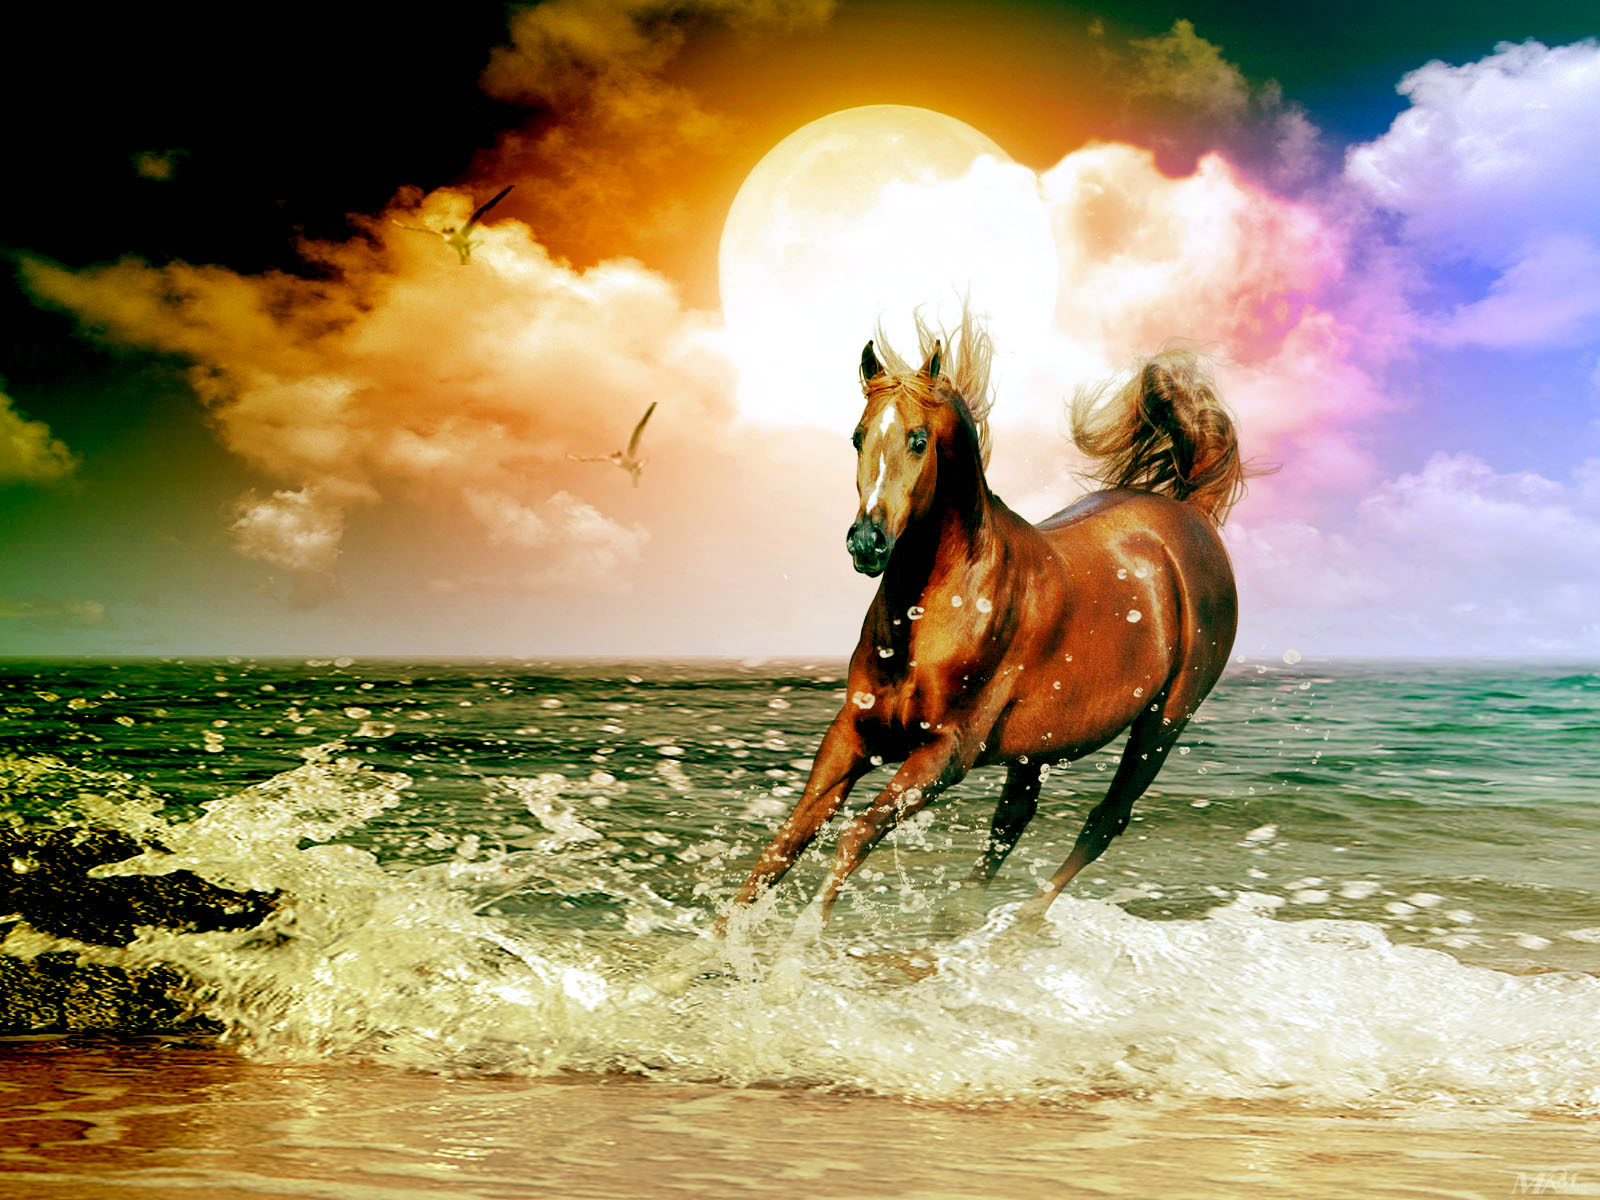 Water horse wallpaper - photo#13